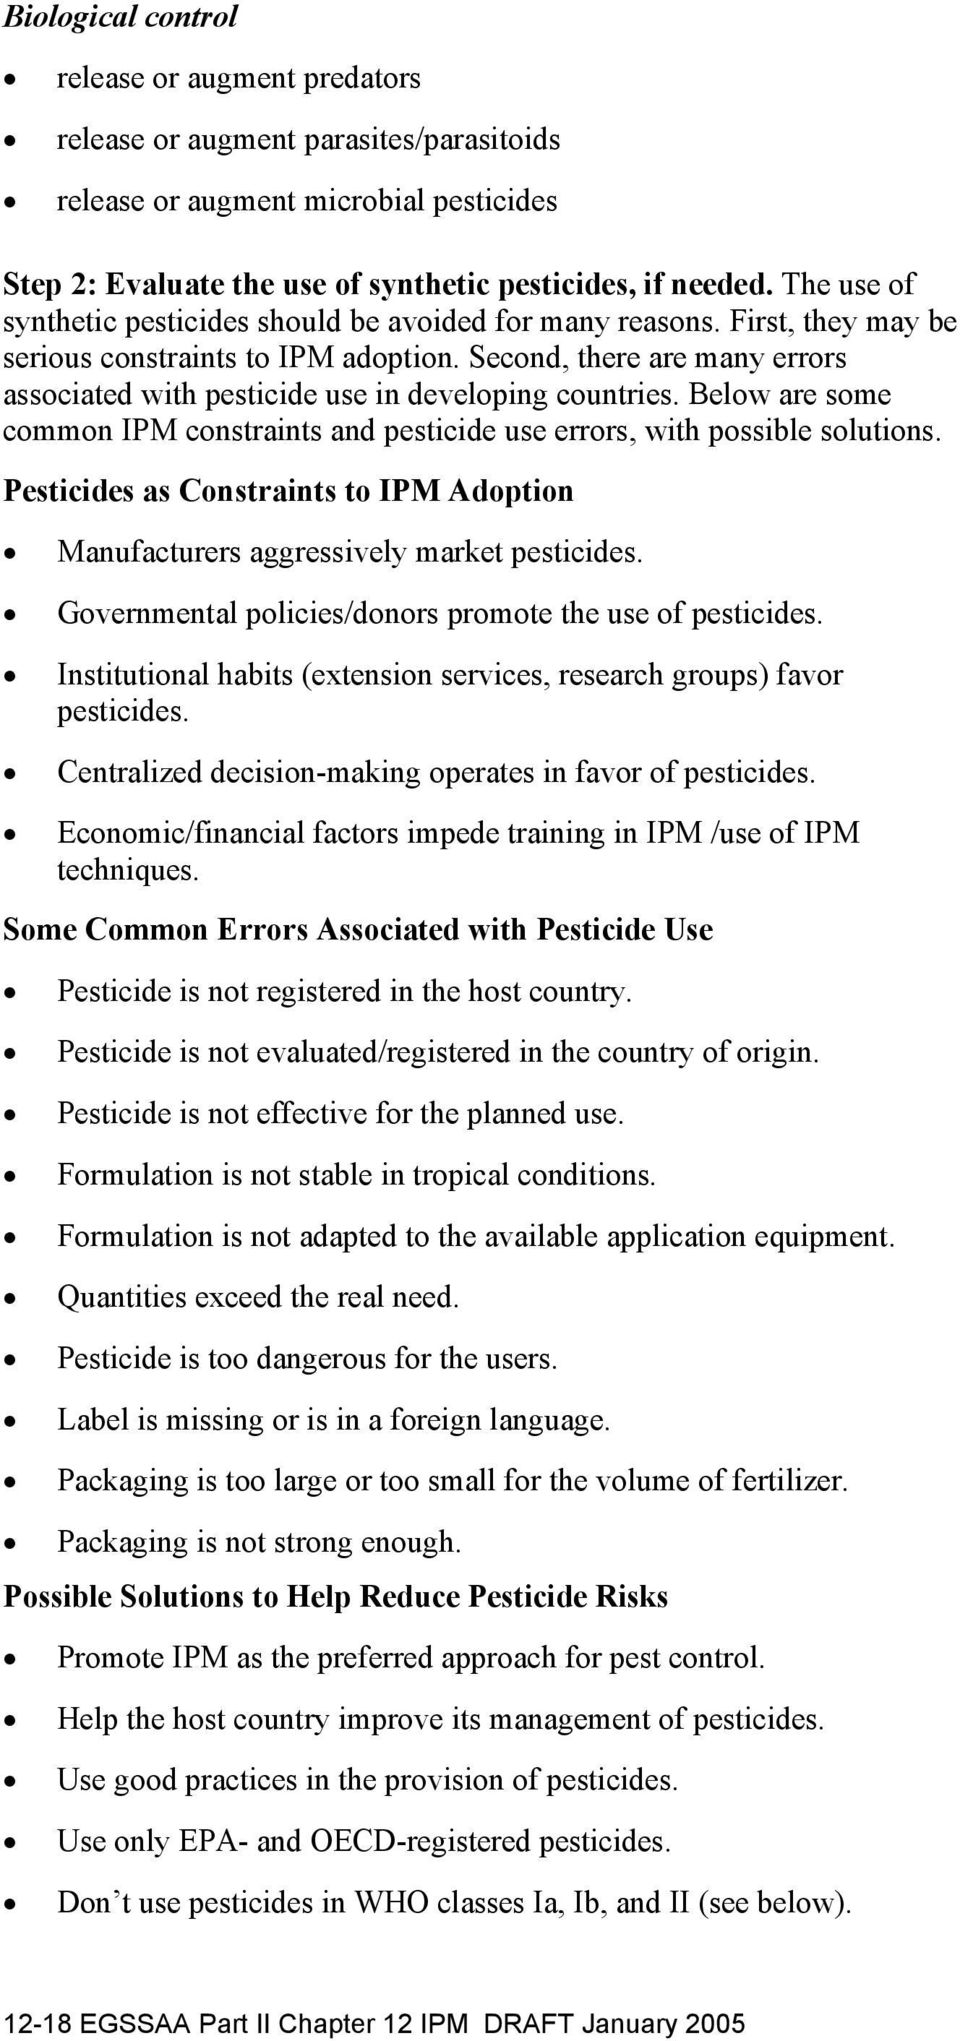 Second, there are many errors associated with pesticide use in developing countries. Below are some common IPM constraints and pesticide use errors, with possible solutions.